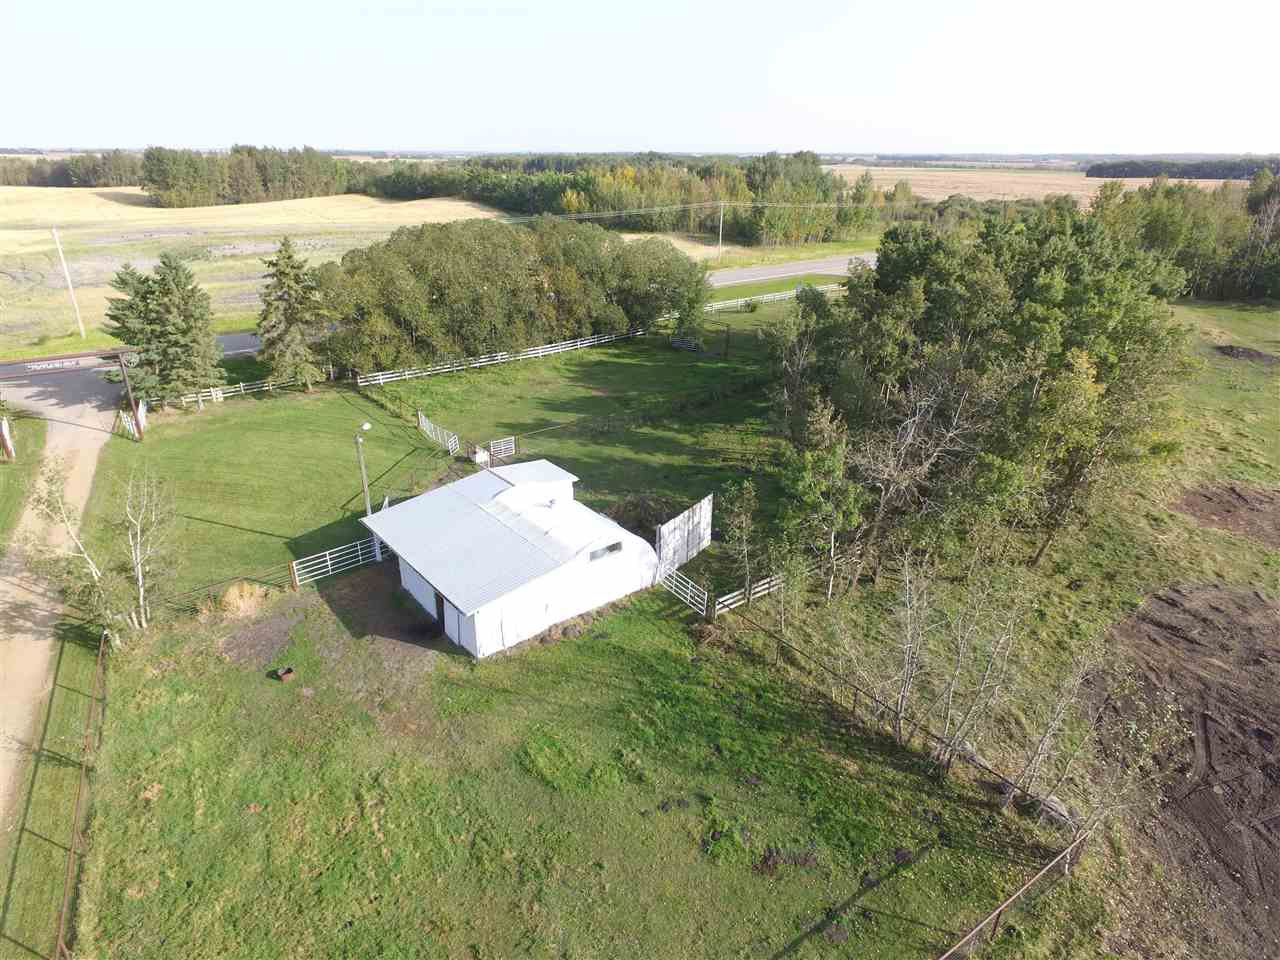 Photo 41: Photos: 472050A Hwy 814: Rural Wetaskiwin County House for sale : MLS®# E4213442